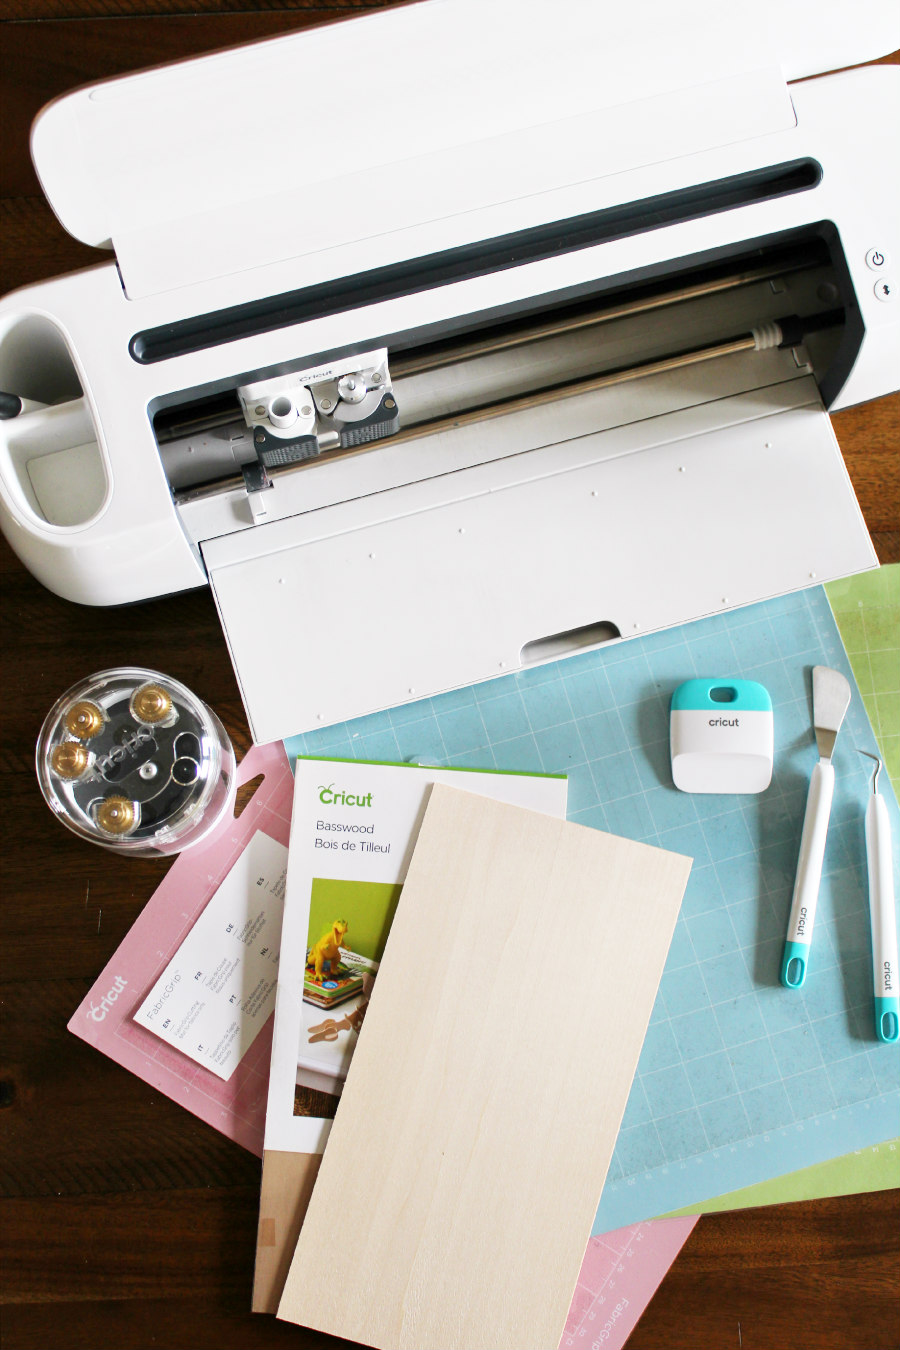 cricut maker with supplies